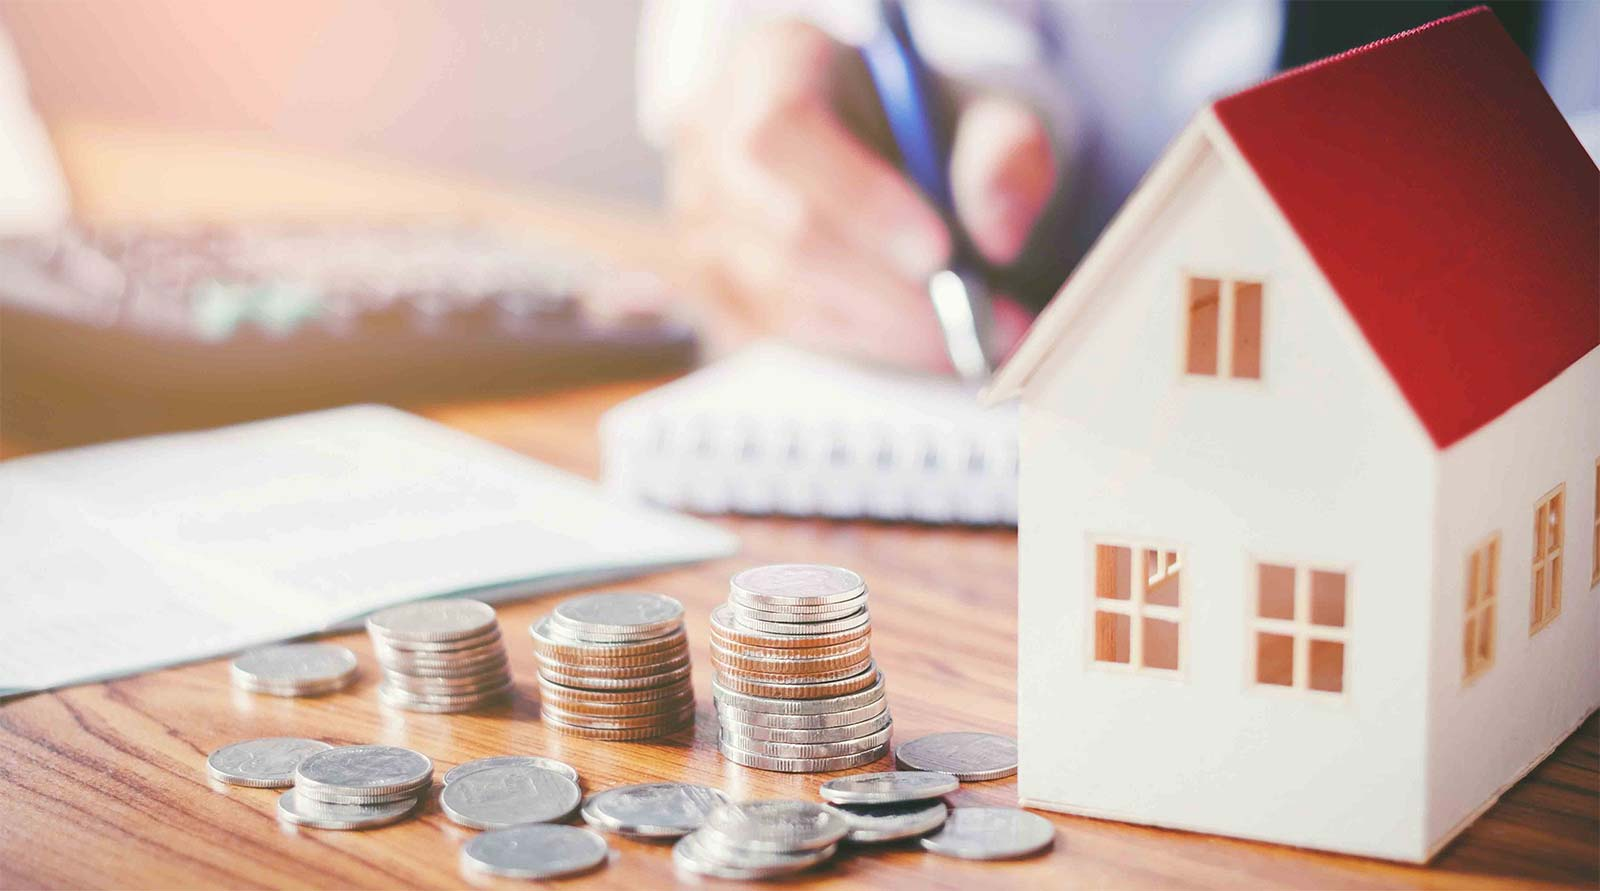 Should You Focus on Repaying Your Mortgage Sooner?